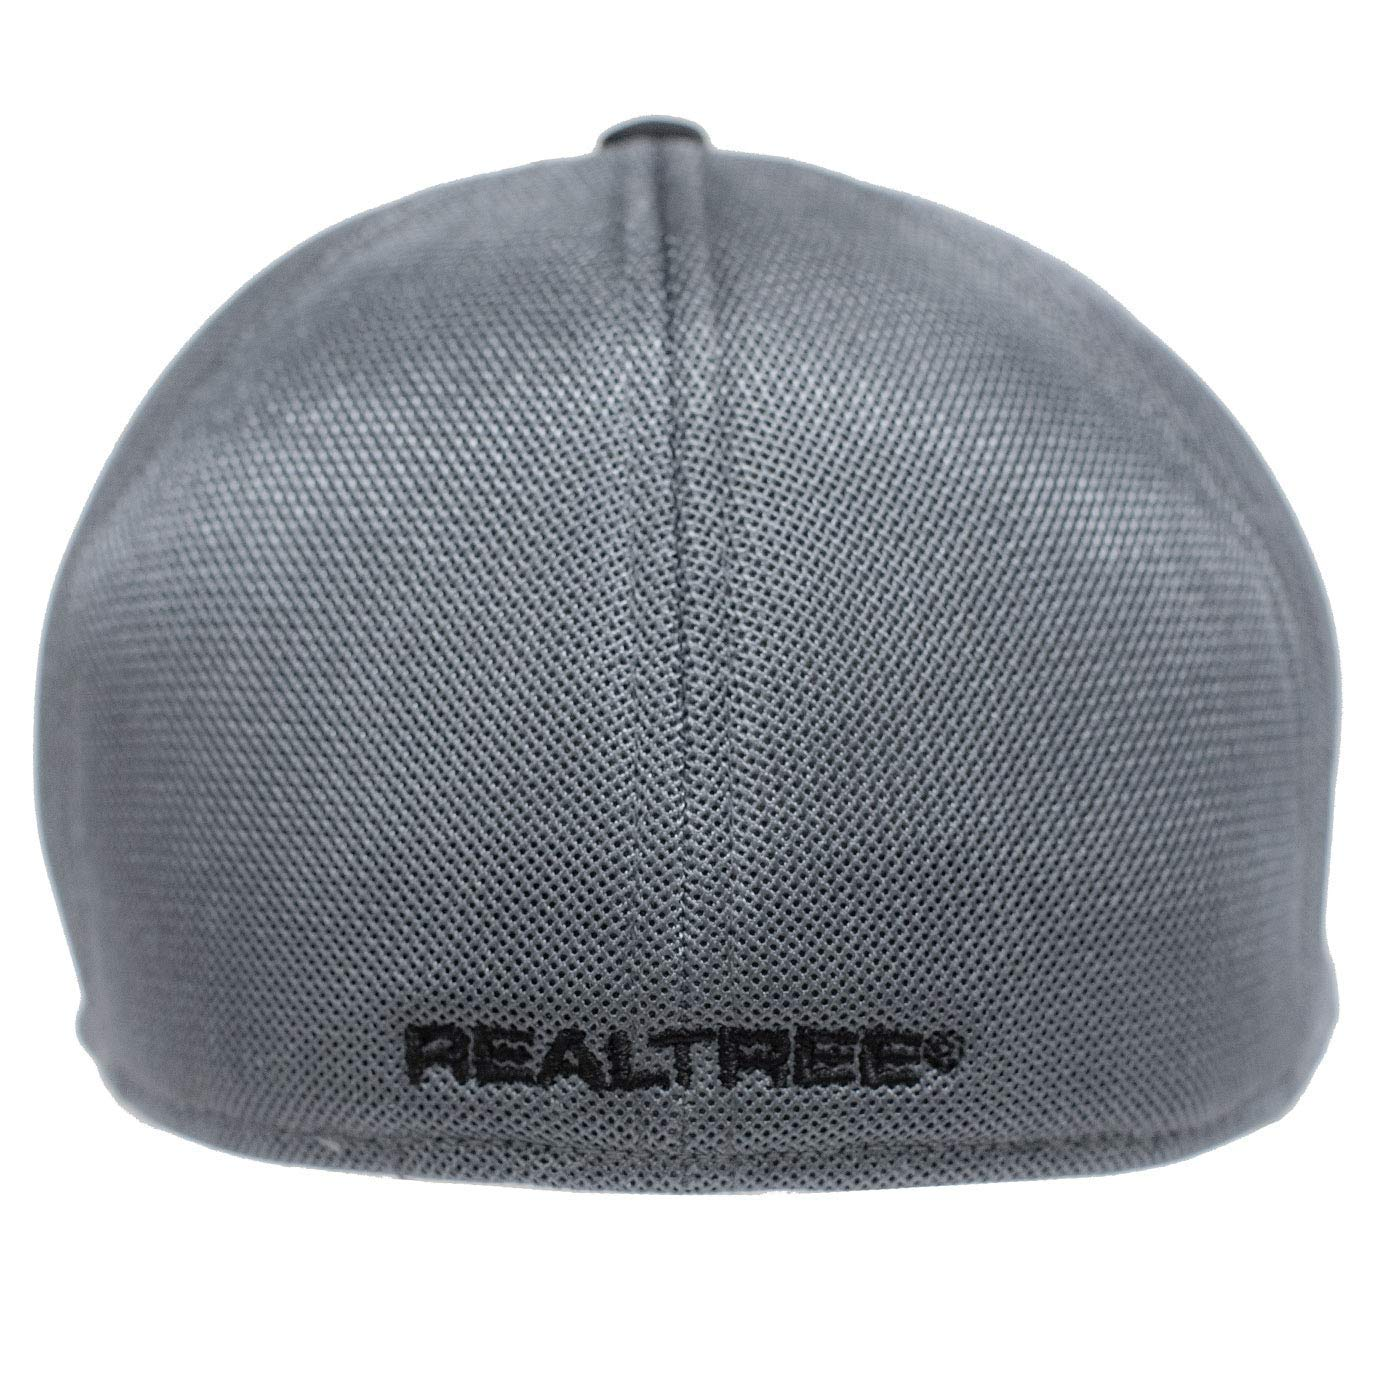 Realtree Mens Blackout Performance Fitted Hat Black Q3 Moisture Wicking Cooling Sweatband